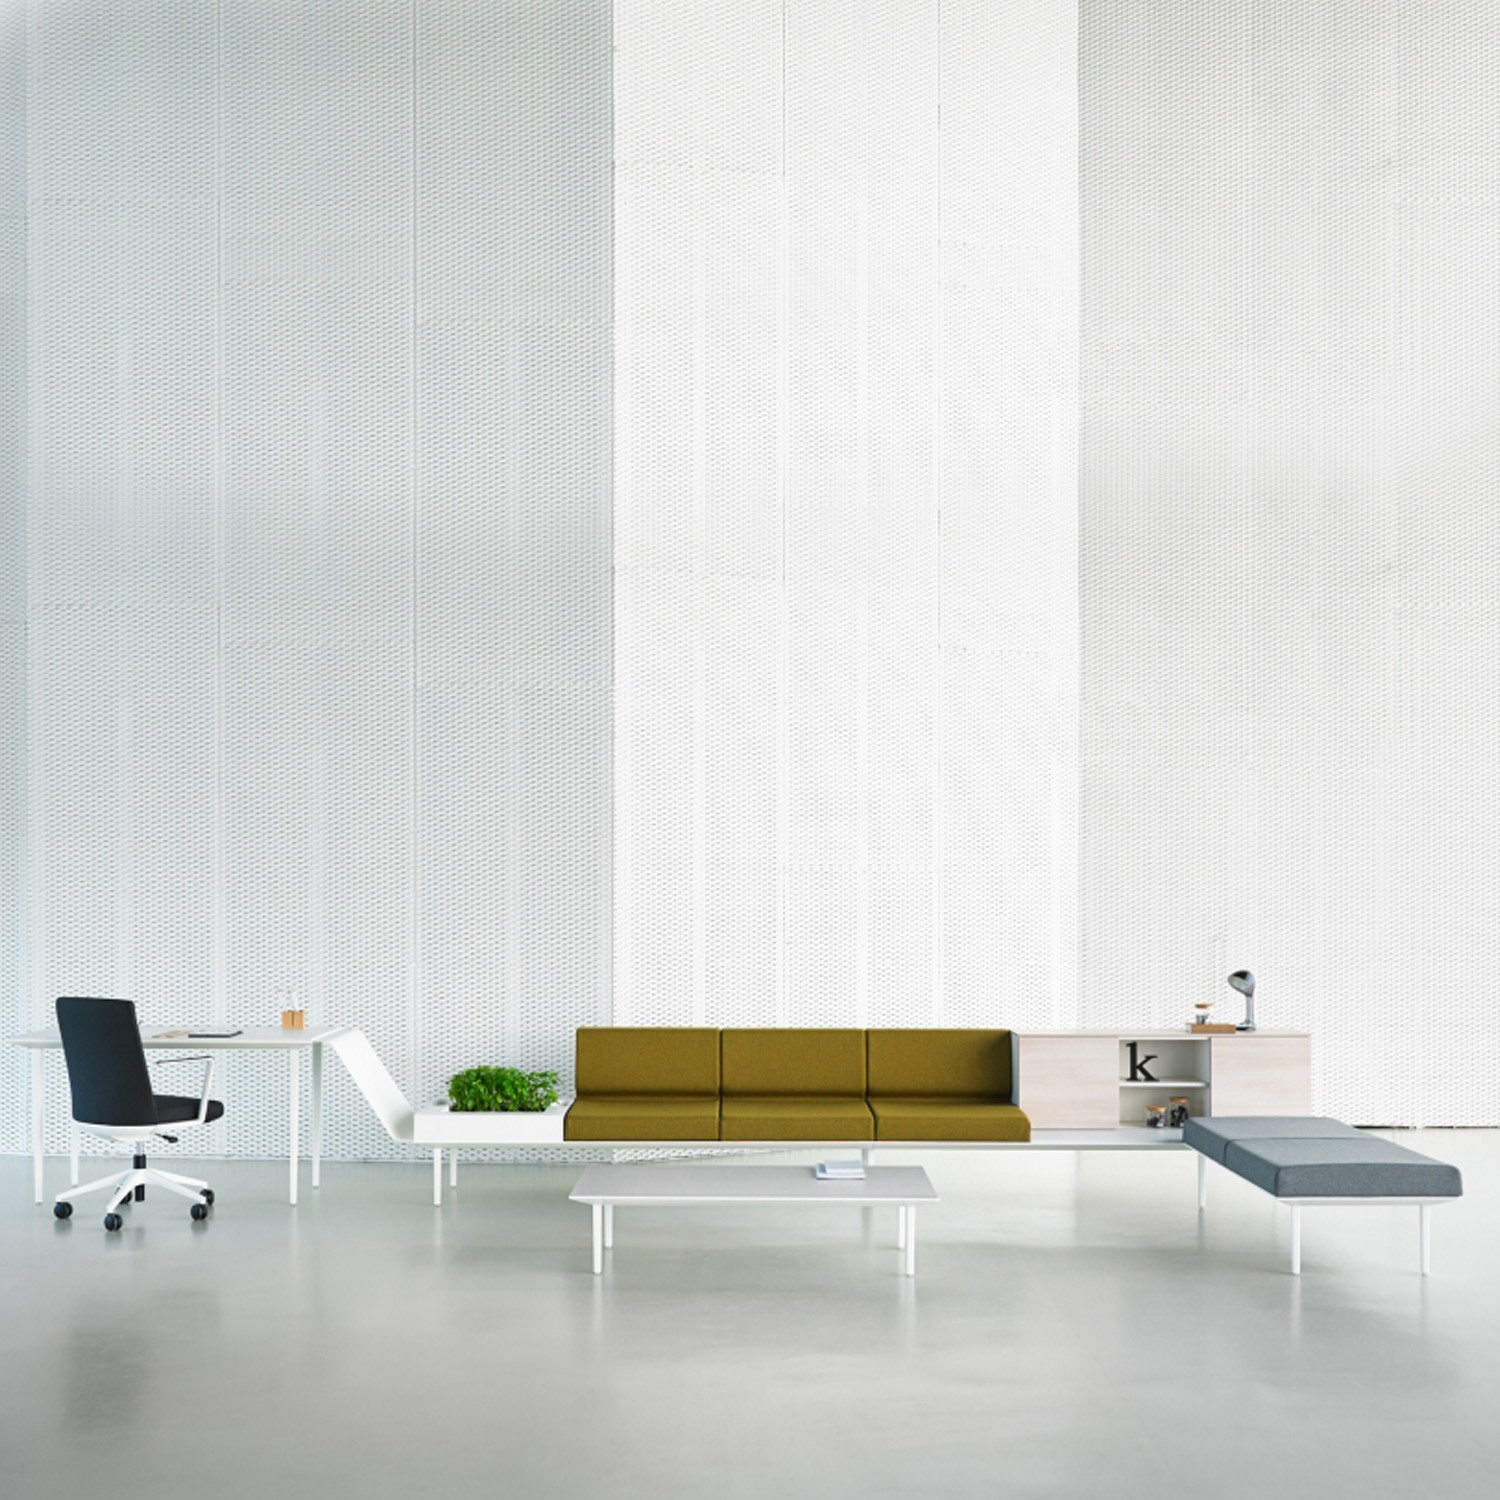 Longo Modular Furniture